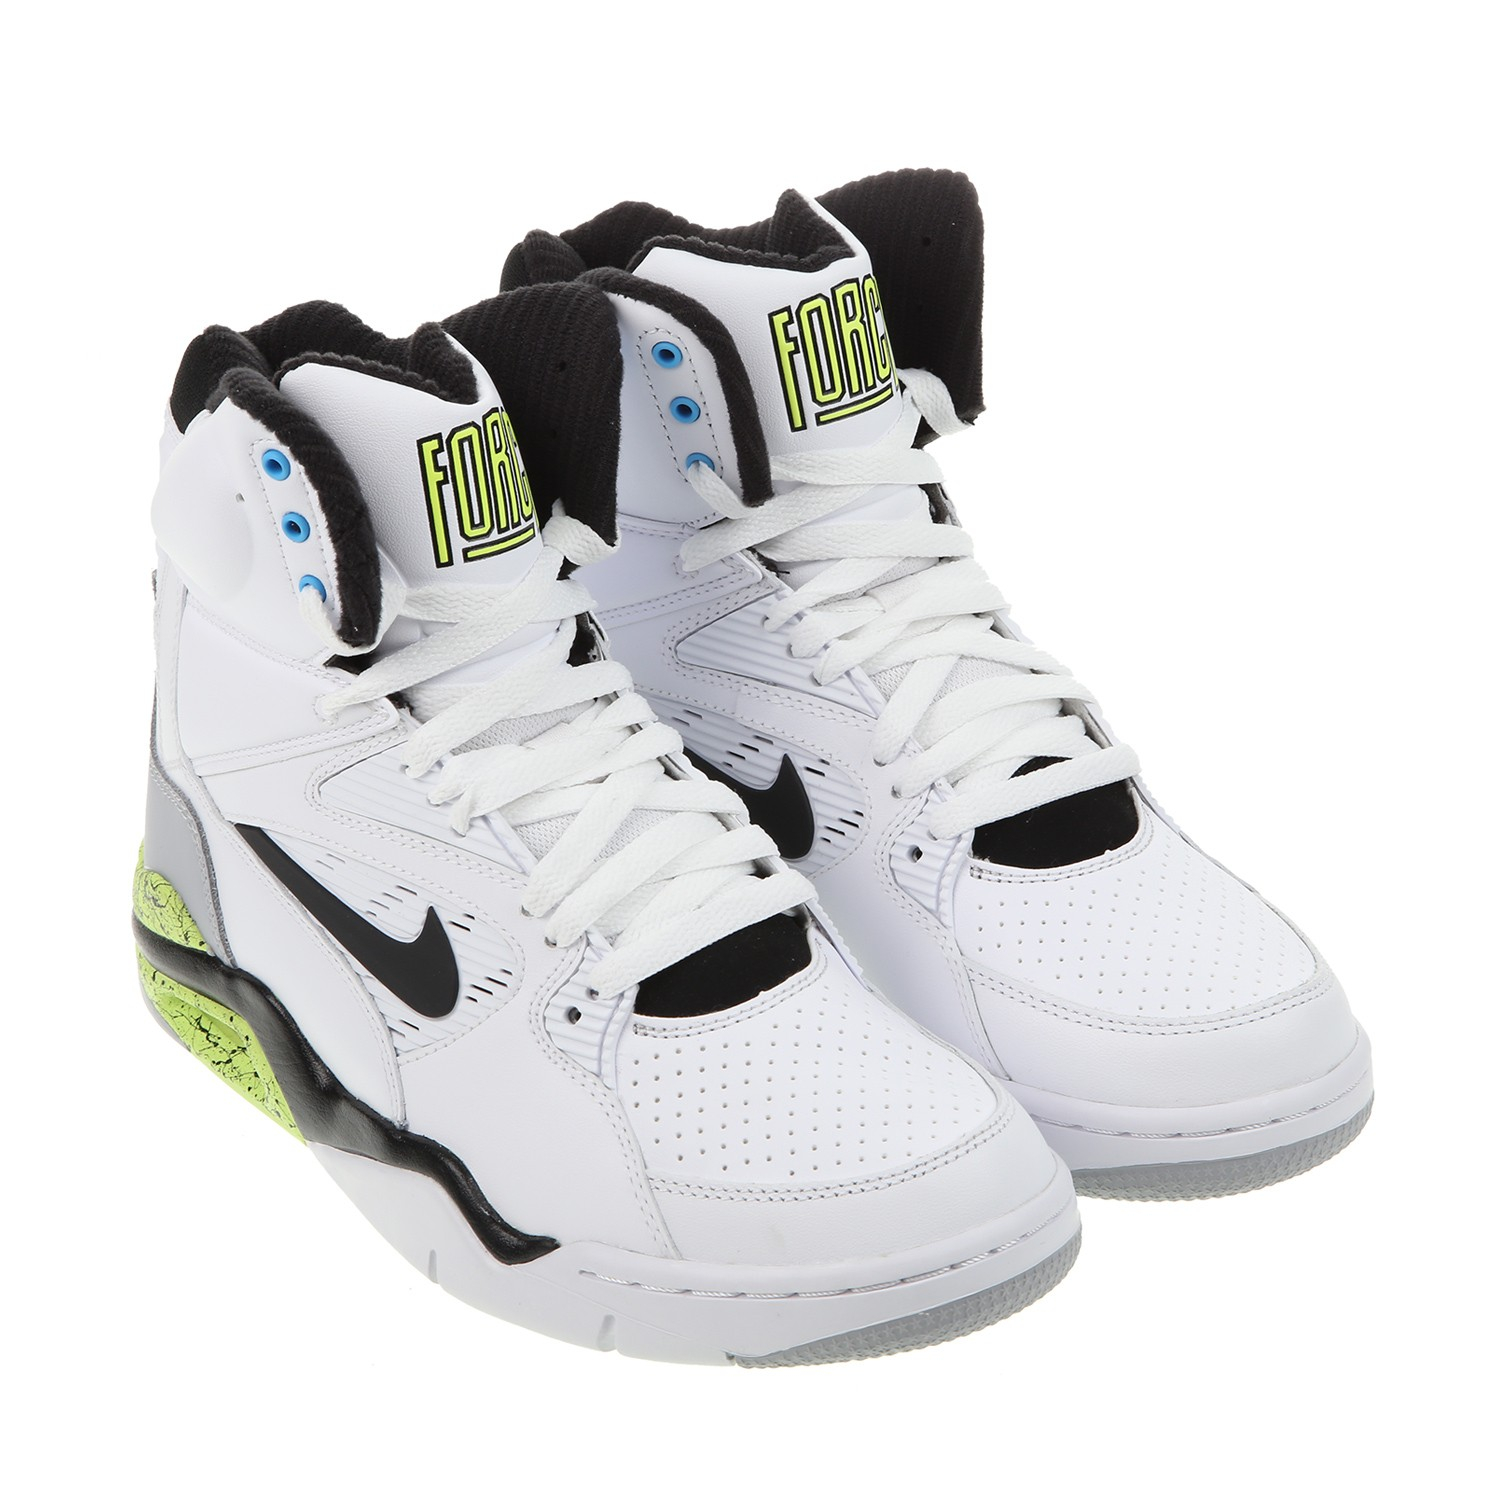 Nike Air Command Force Sneakers White Size 9 5 In White